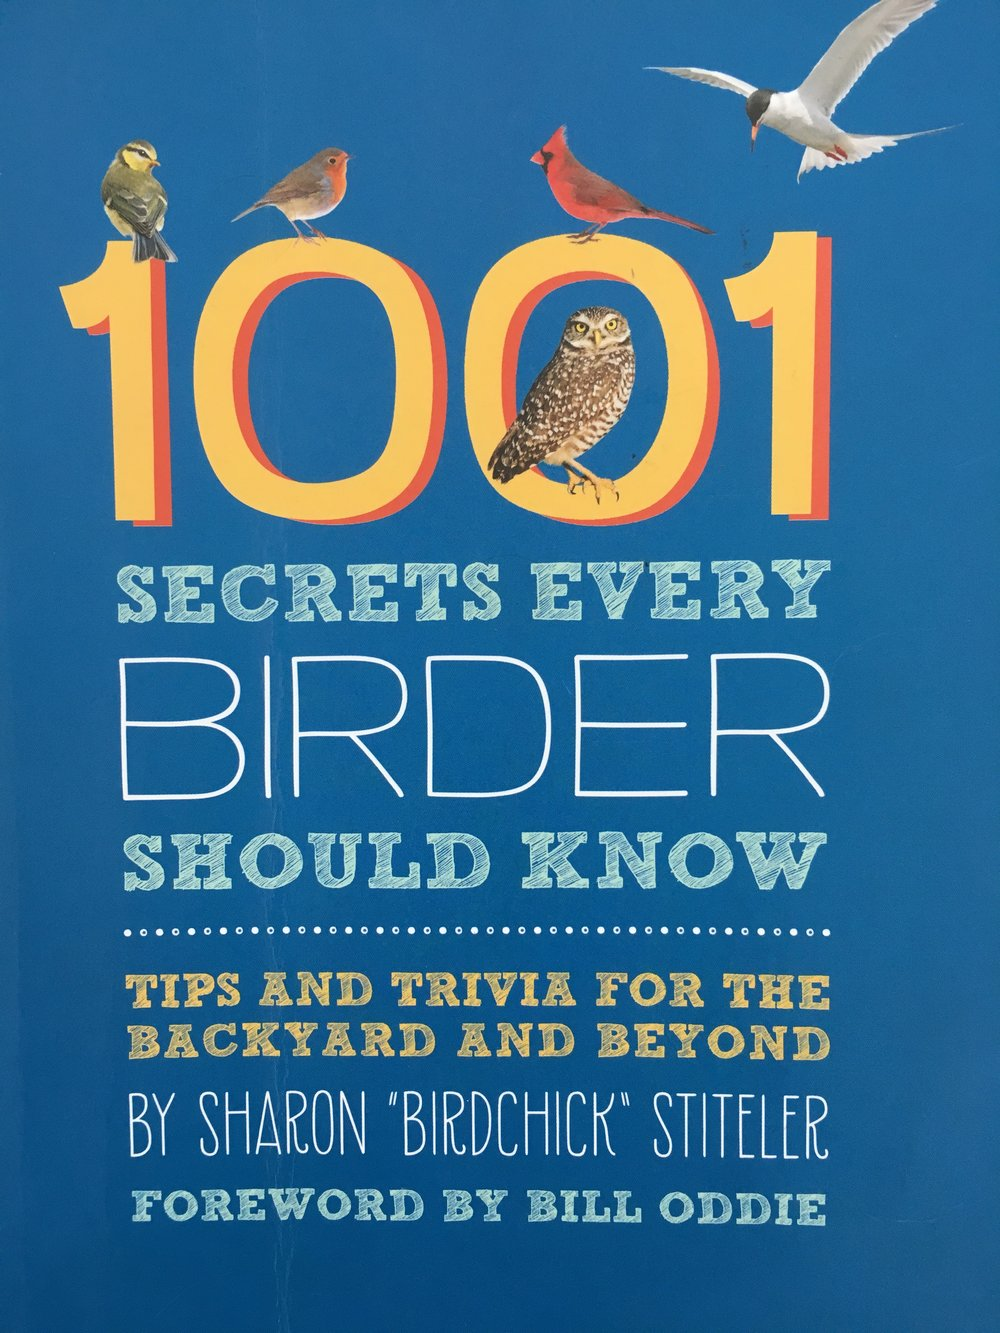 1001 Secrets every Birder should know.jpg